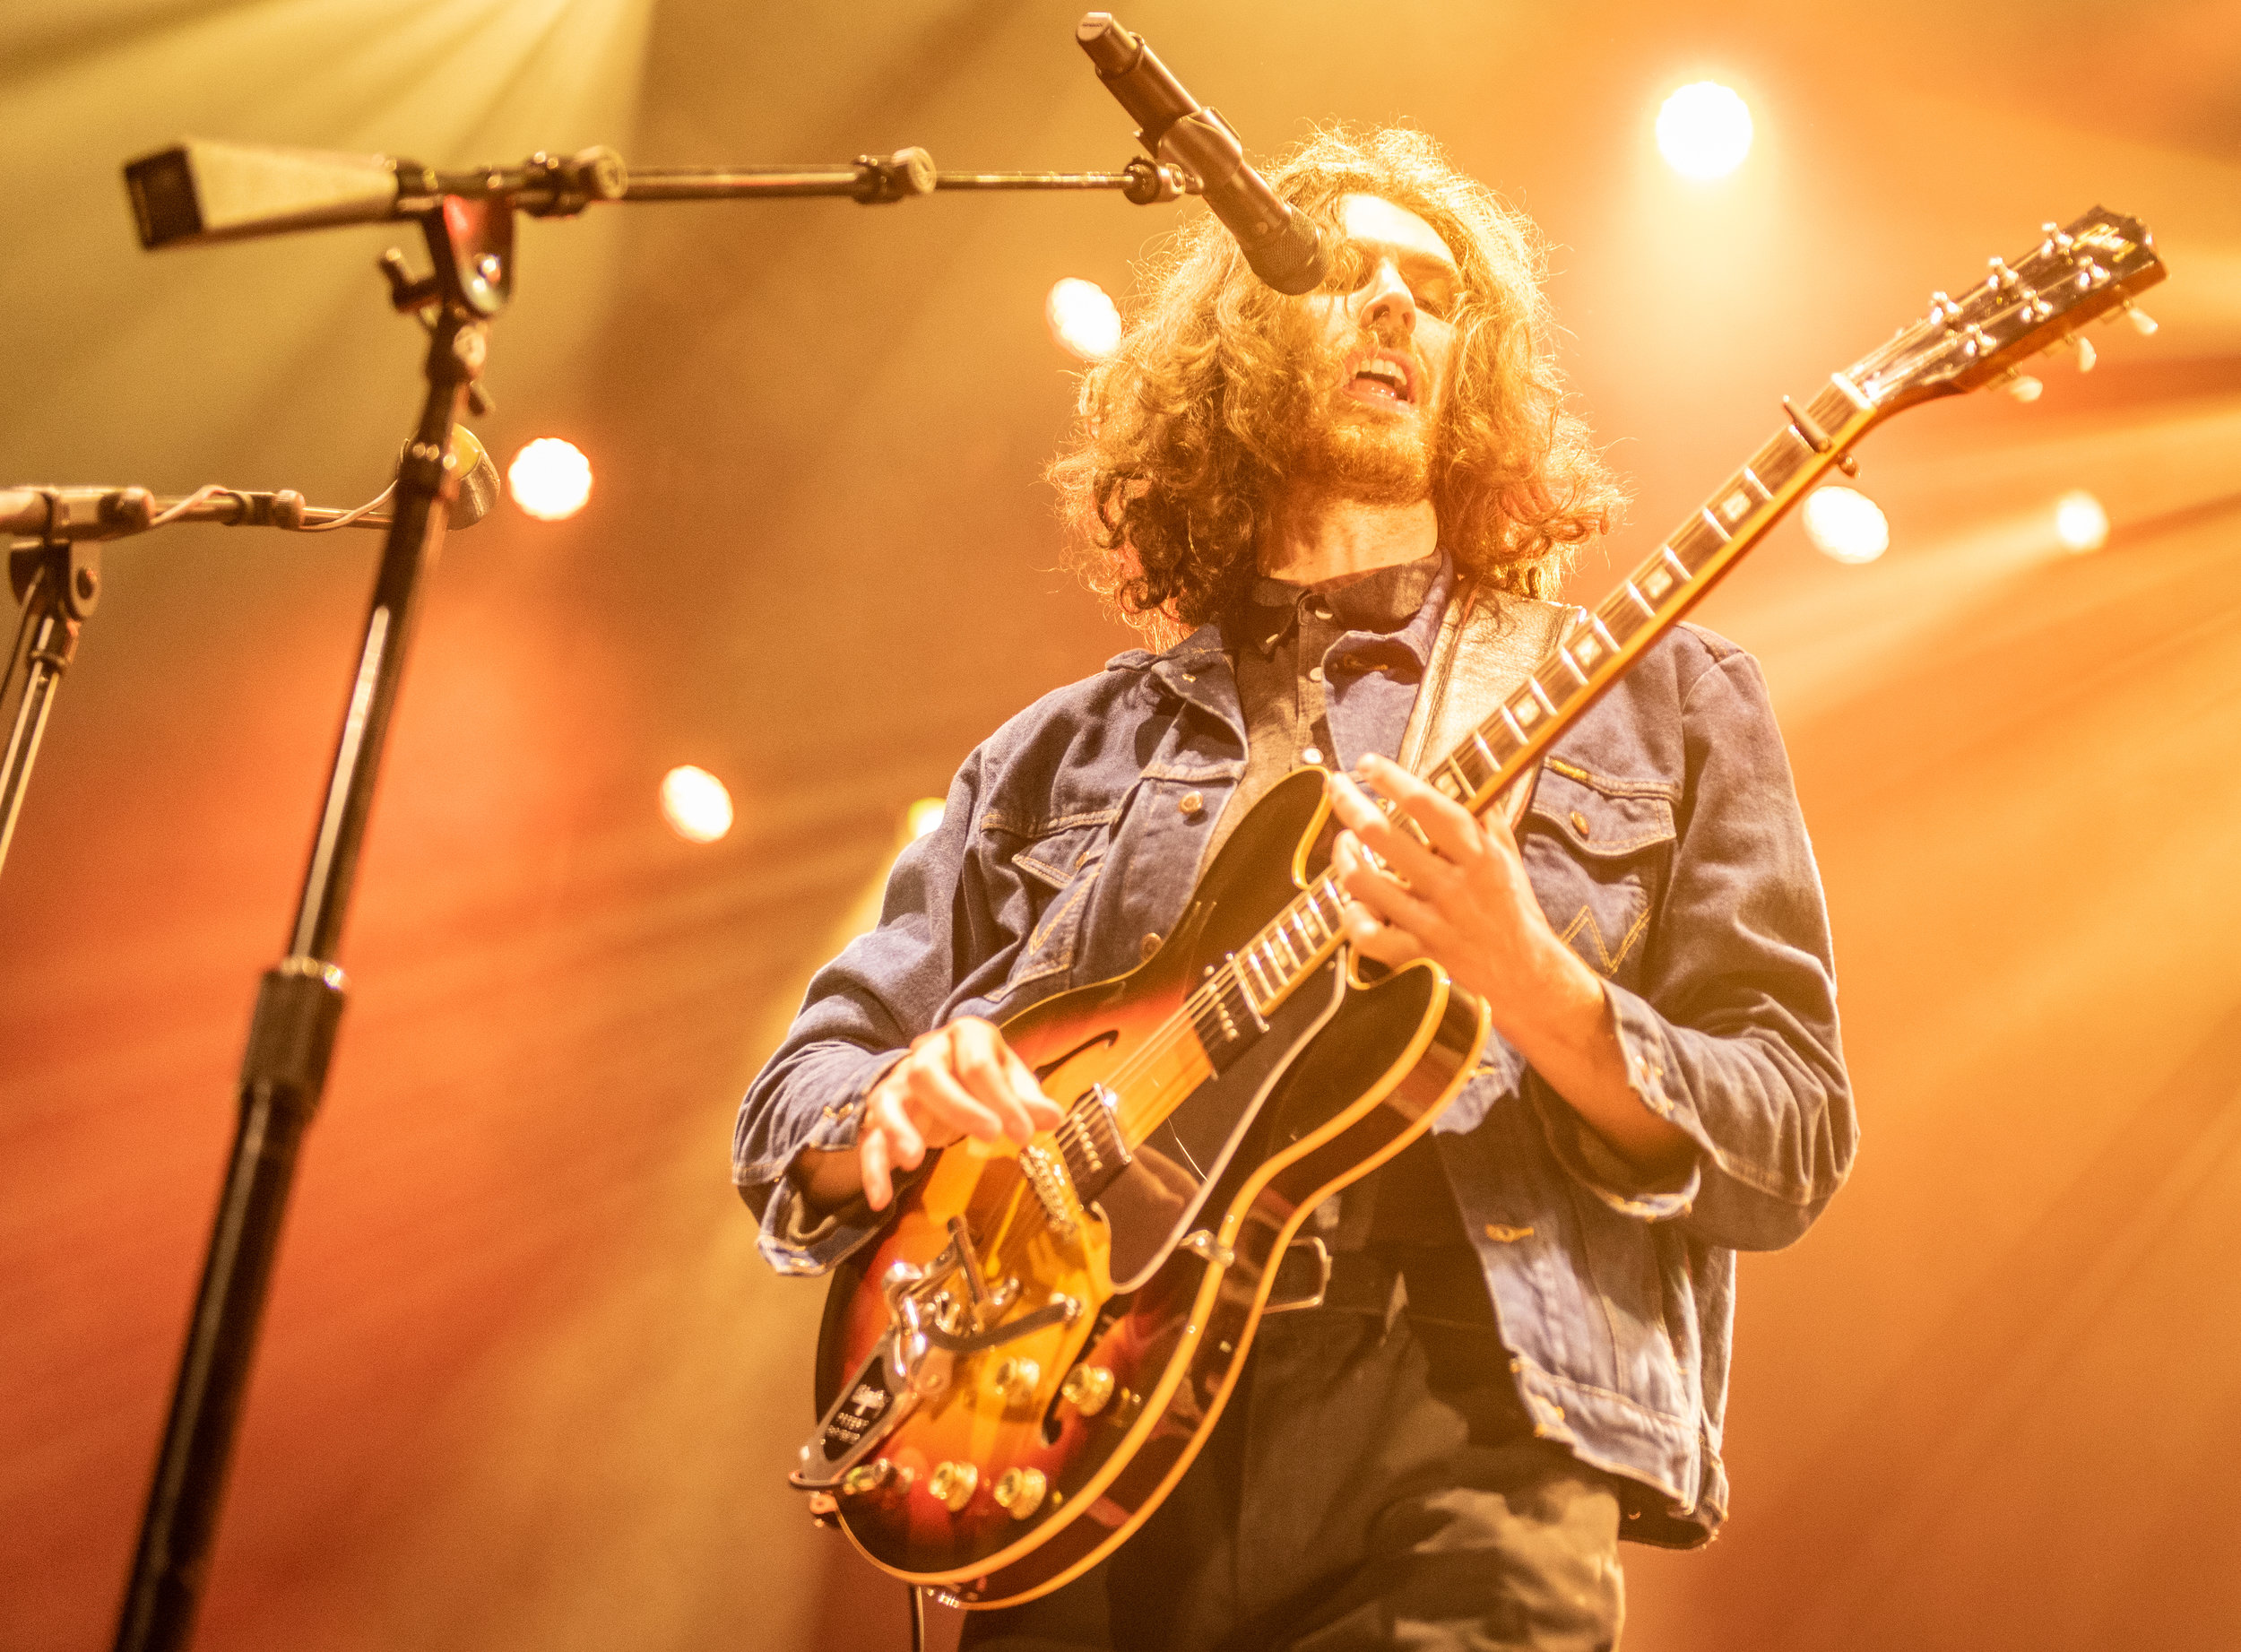 HOZIER PERFORMING AT EDINBURGH'S USHER HALL - 25.09.2019  PICTURE BY: | CALUM BUCHAN PHOTOGRAPHY